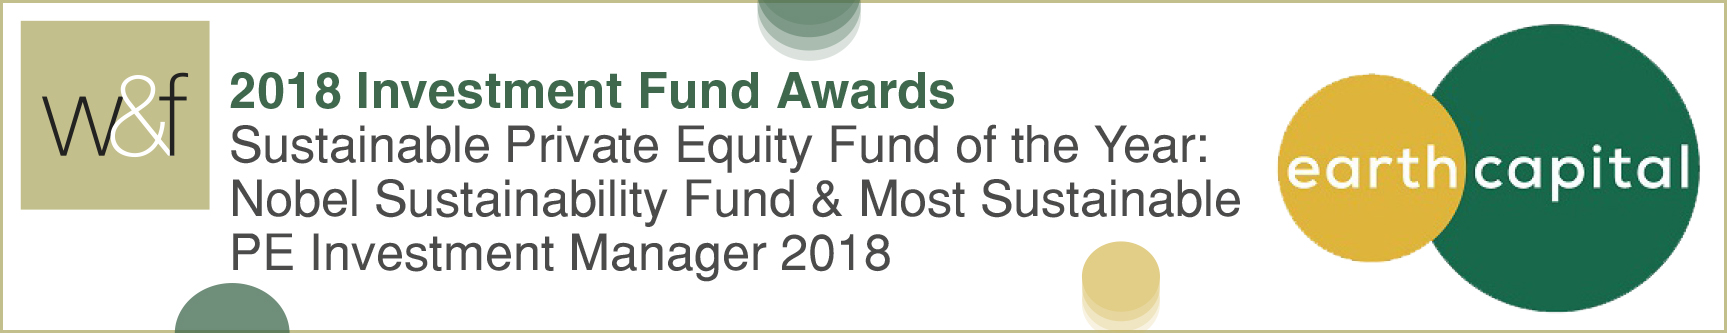 Logo of award for 'Investment Fund Awards 2018'